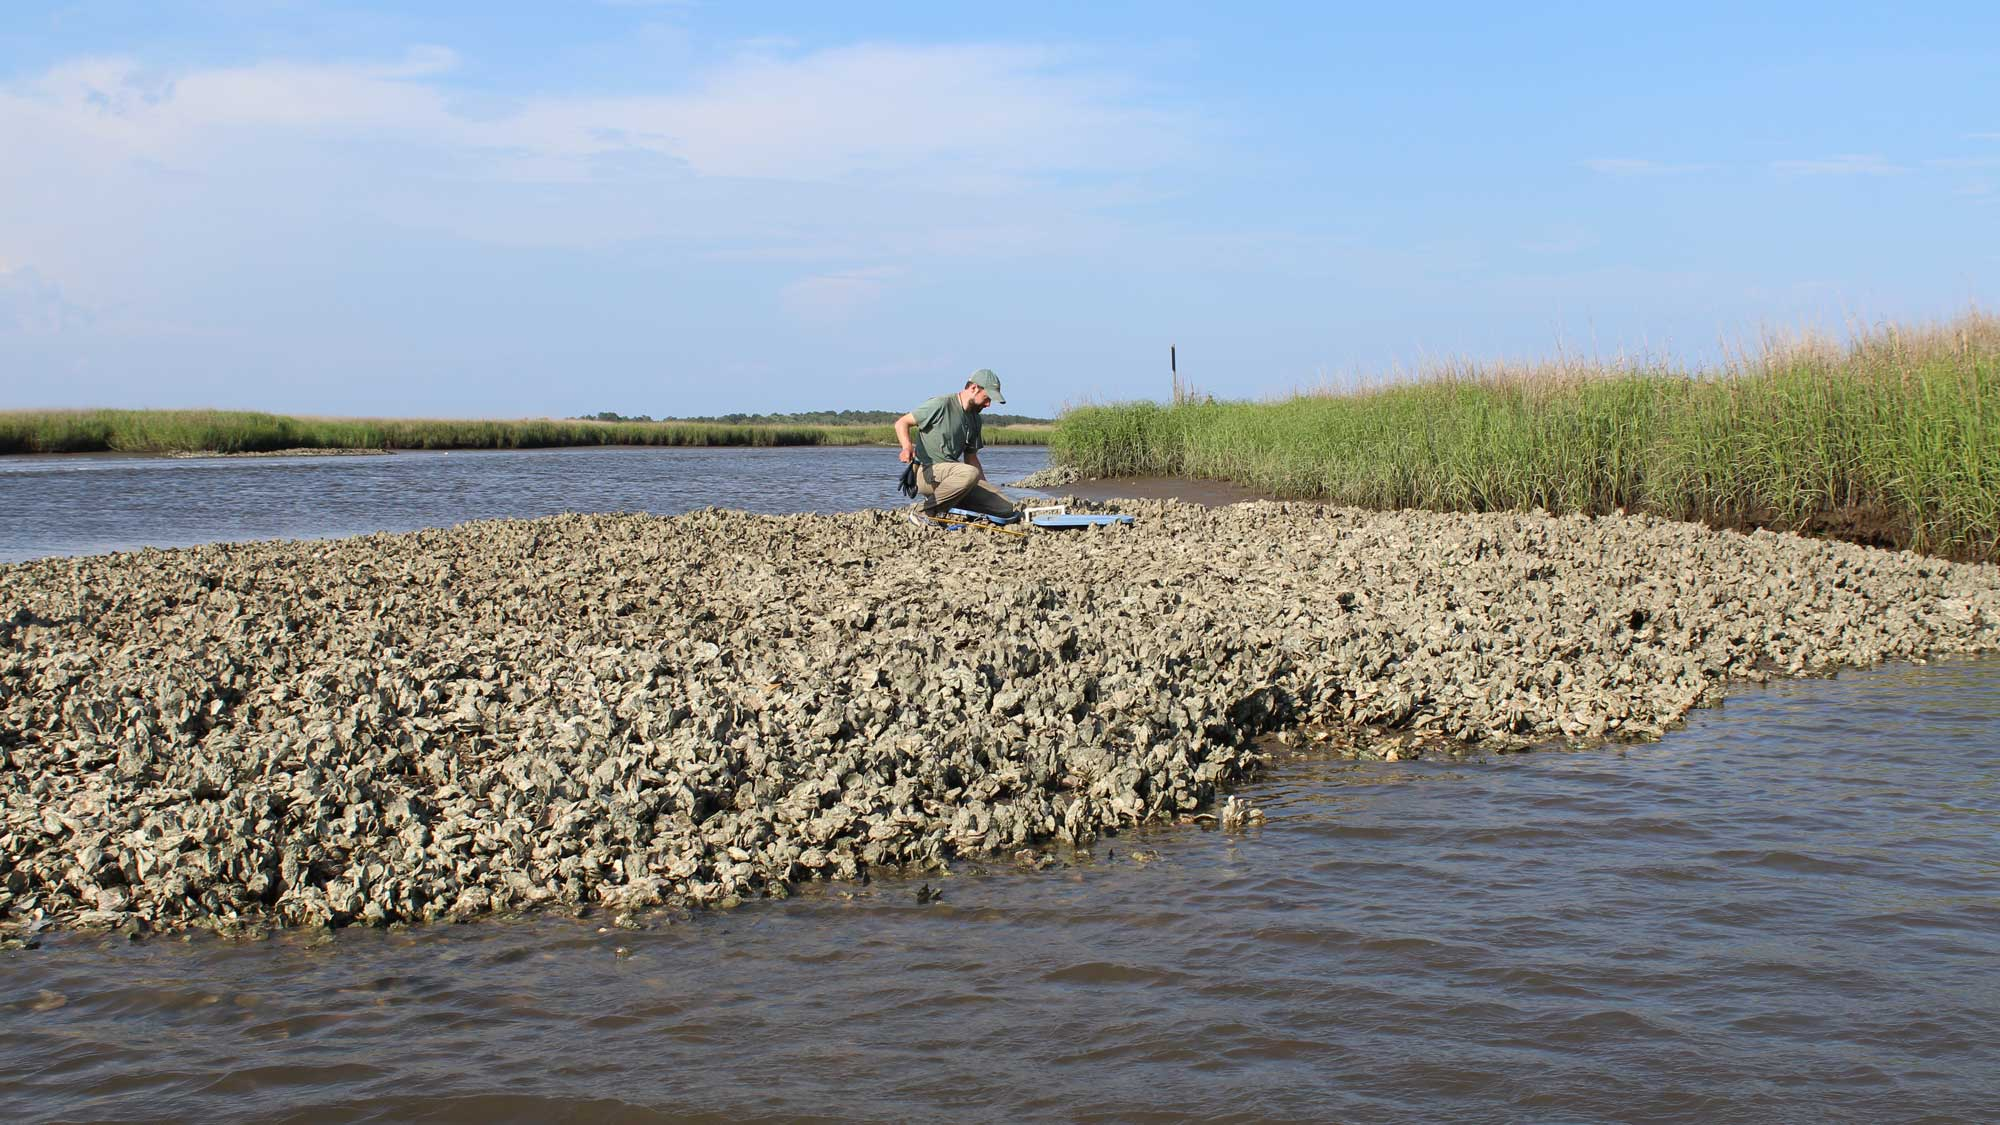 Photograph of a man collecting oyster samples.